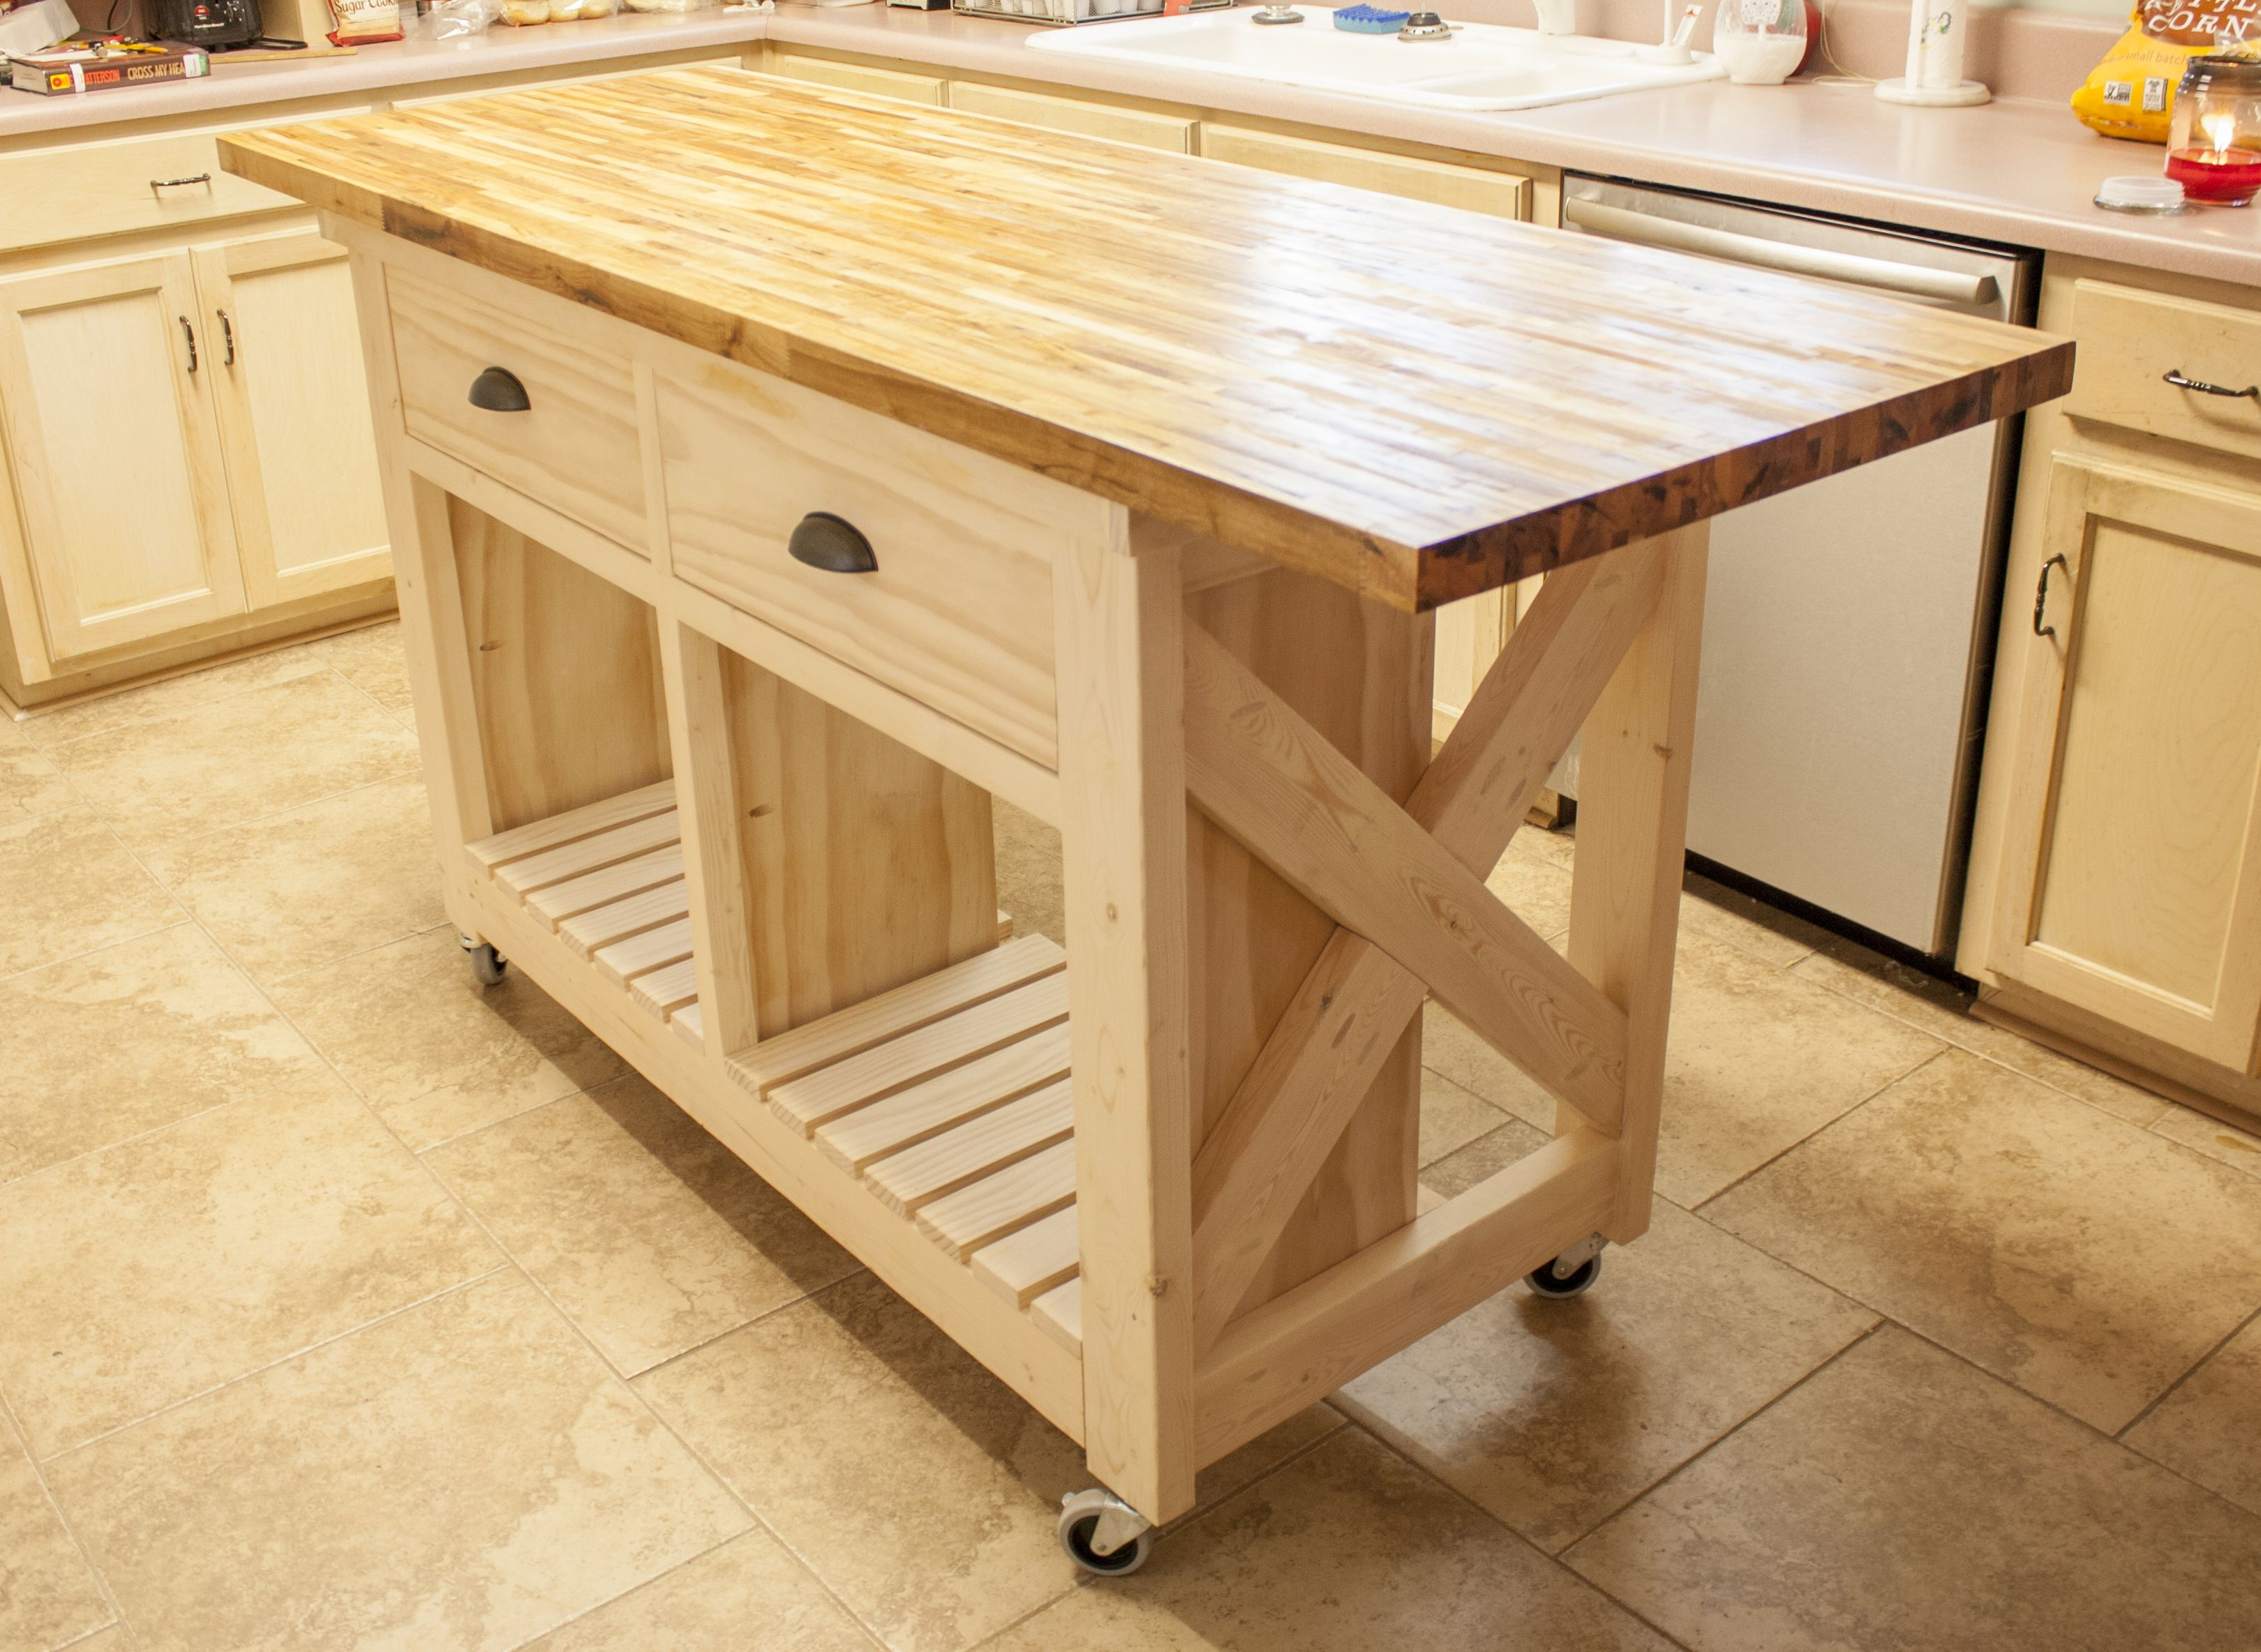 Double Kitchen Island With Butcher Block Top Kitchen Island Plans Kitchen Island With Butcher Block Top Mobile Kitchen Island